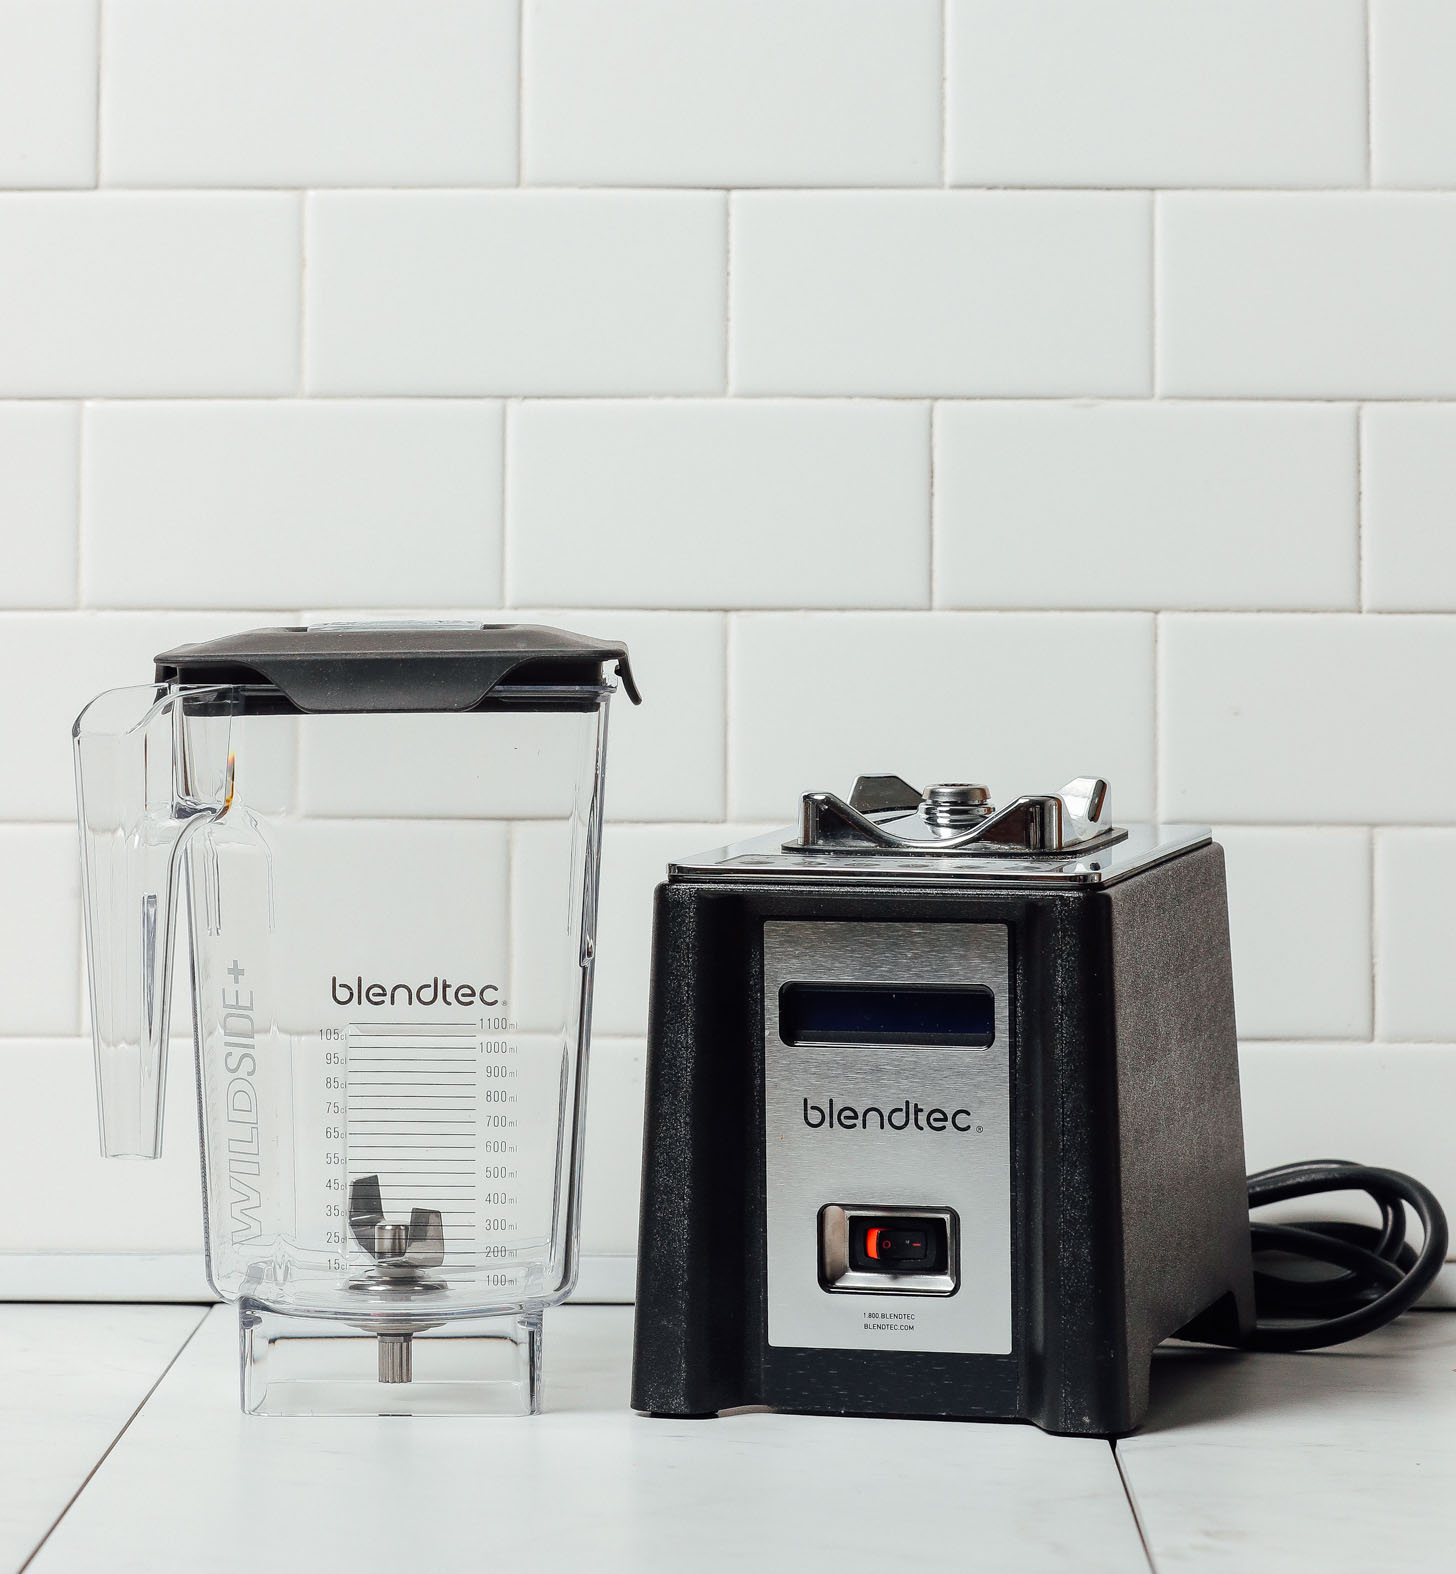 Blendtec professional 750 blender as part of our unbiased review of the best blenders in 2019